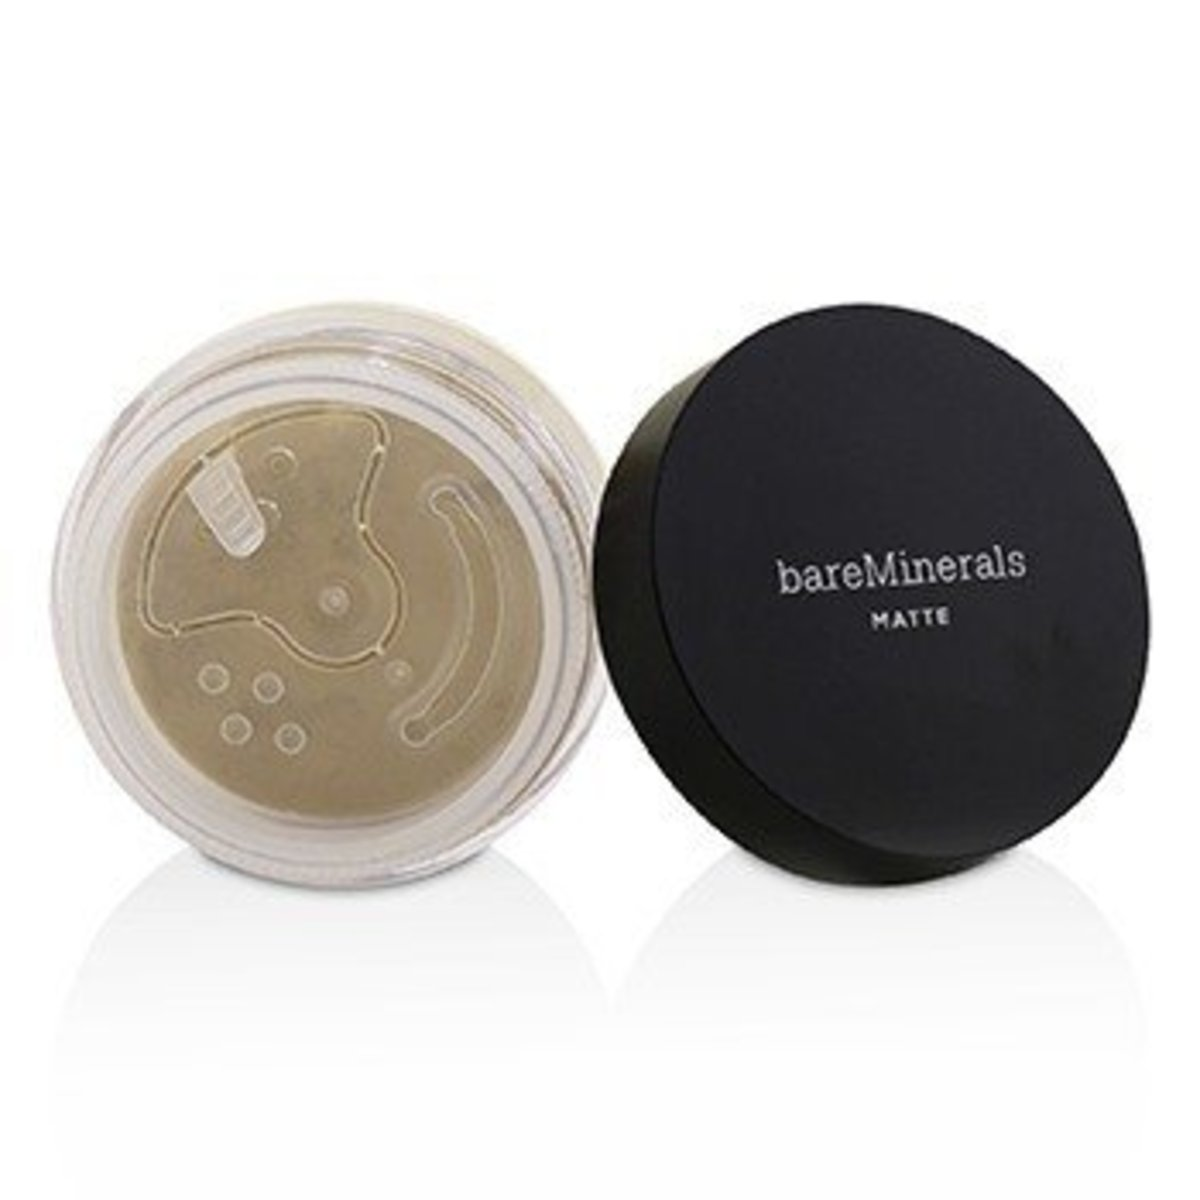 BareMinerals Matte Foundation Broad Spectrum SPF15 - Golden Nude  -[Parallel Import Product]